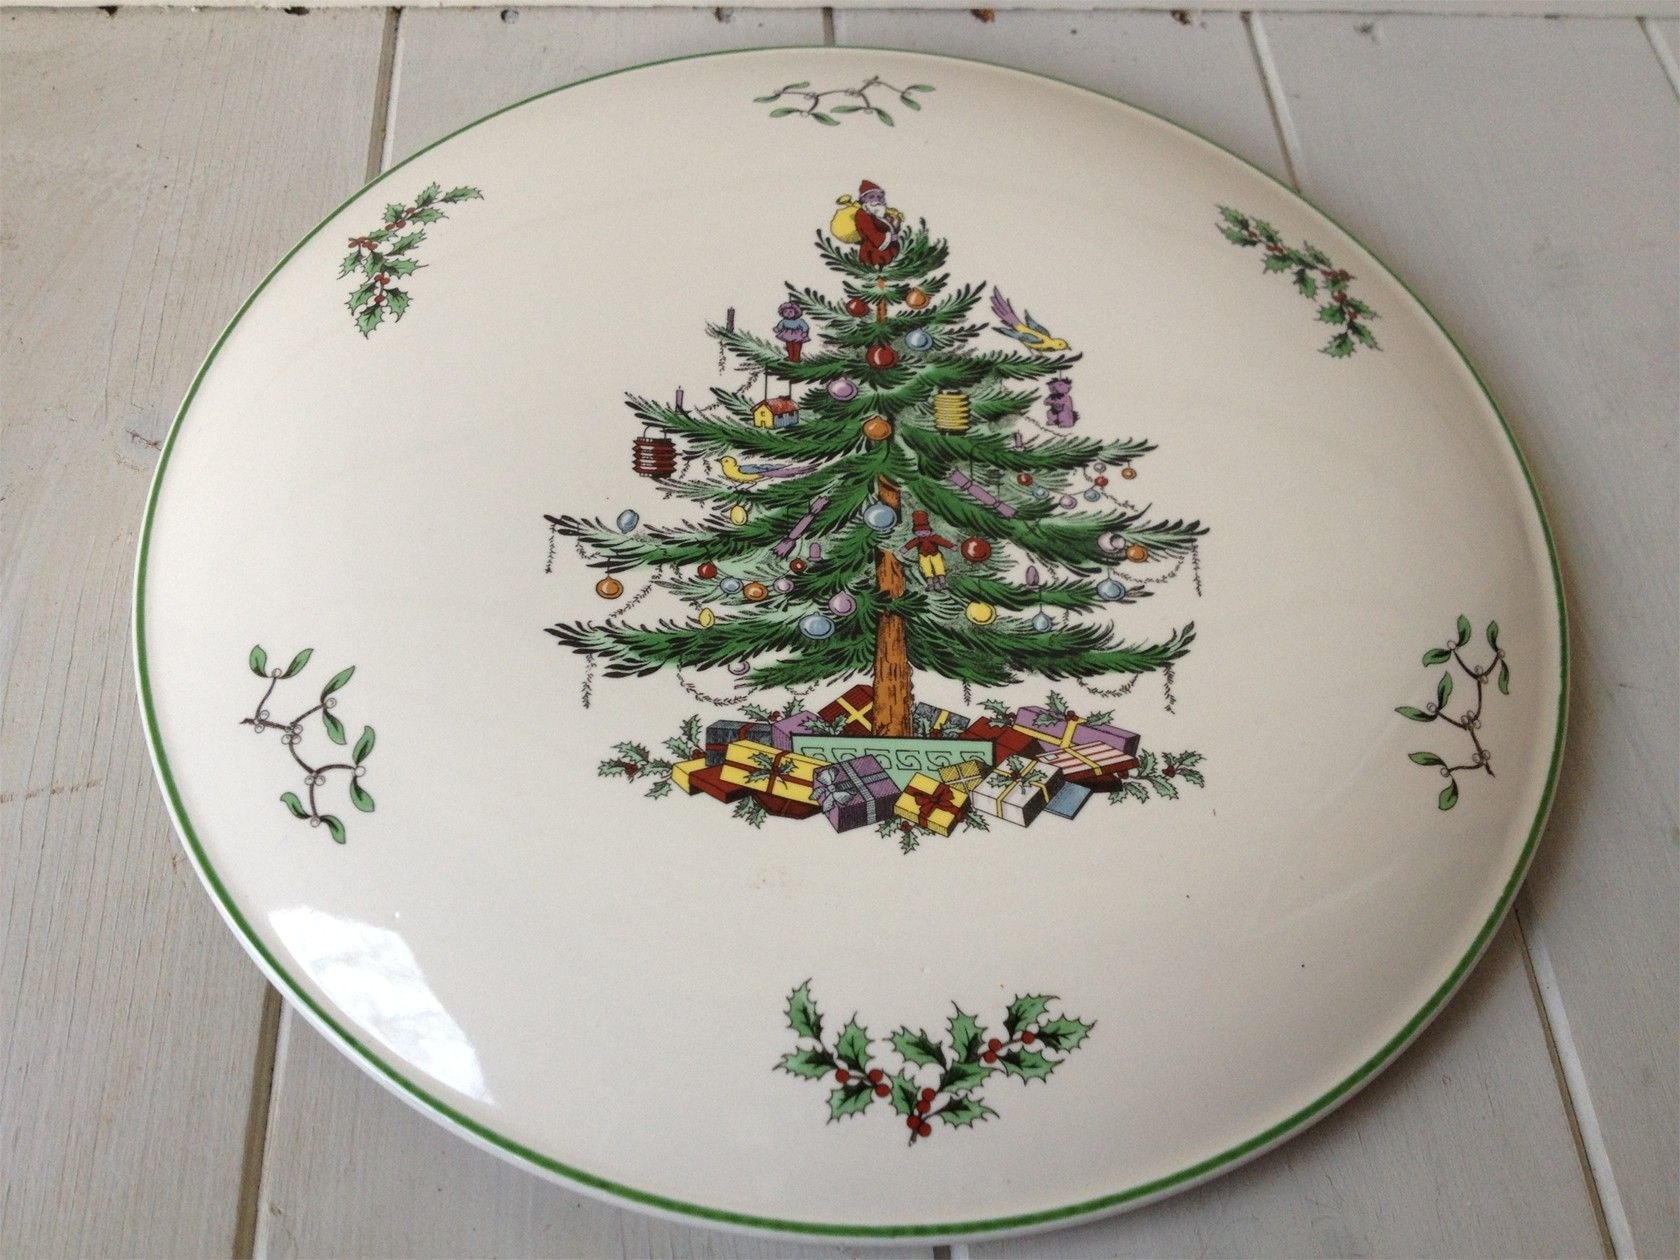 IMMACULATE SPODE CHRSTMAS TREE CAKE STAND - PERFECT FOR THE CHRISTMAS CAKE!